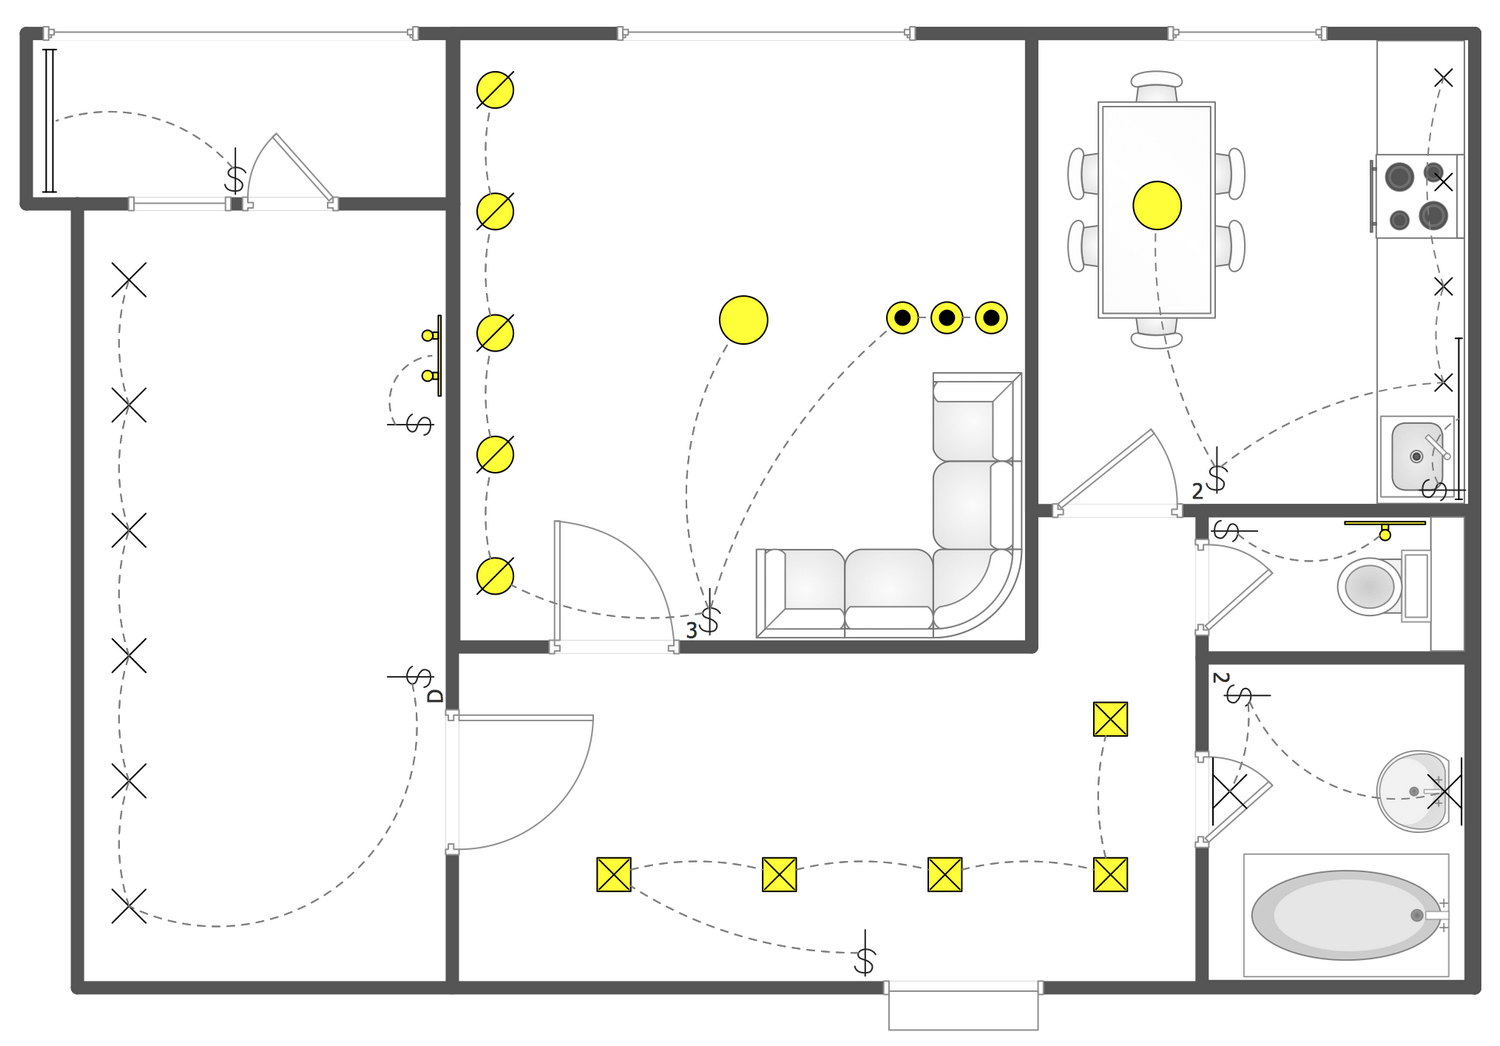 main breaker panel wiring diagram residential